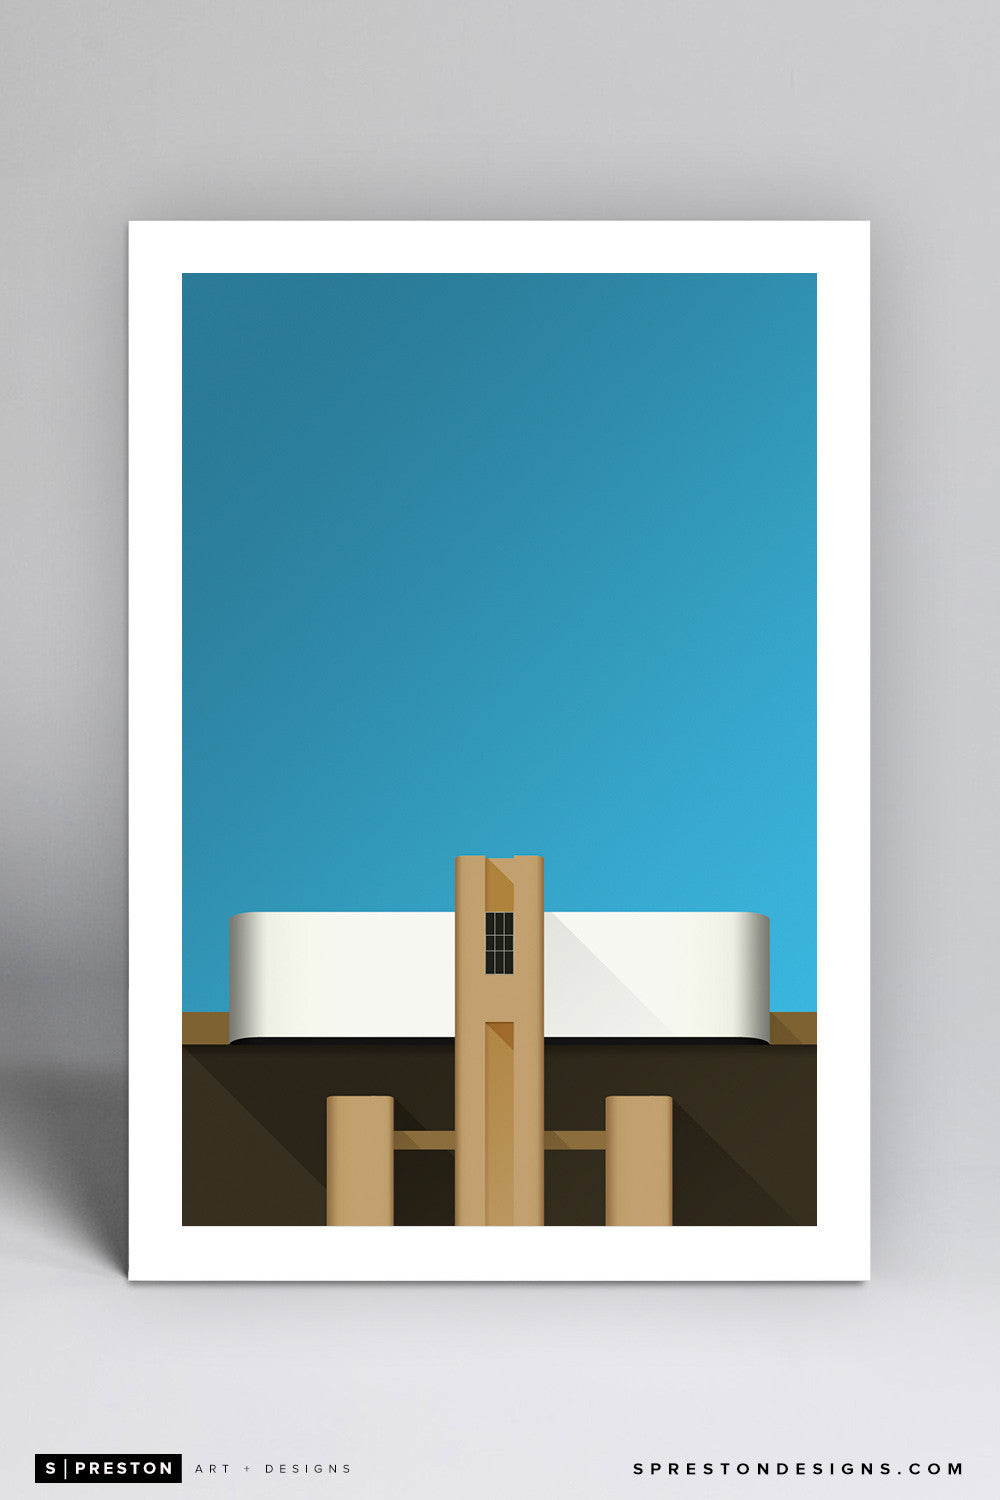 Minimalist Kyle Field Art Print - Texas A&M - S. Preston Art + Designs